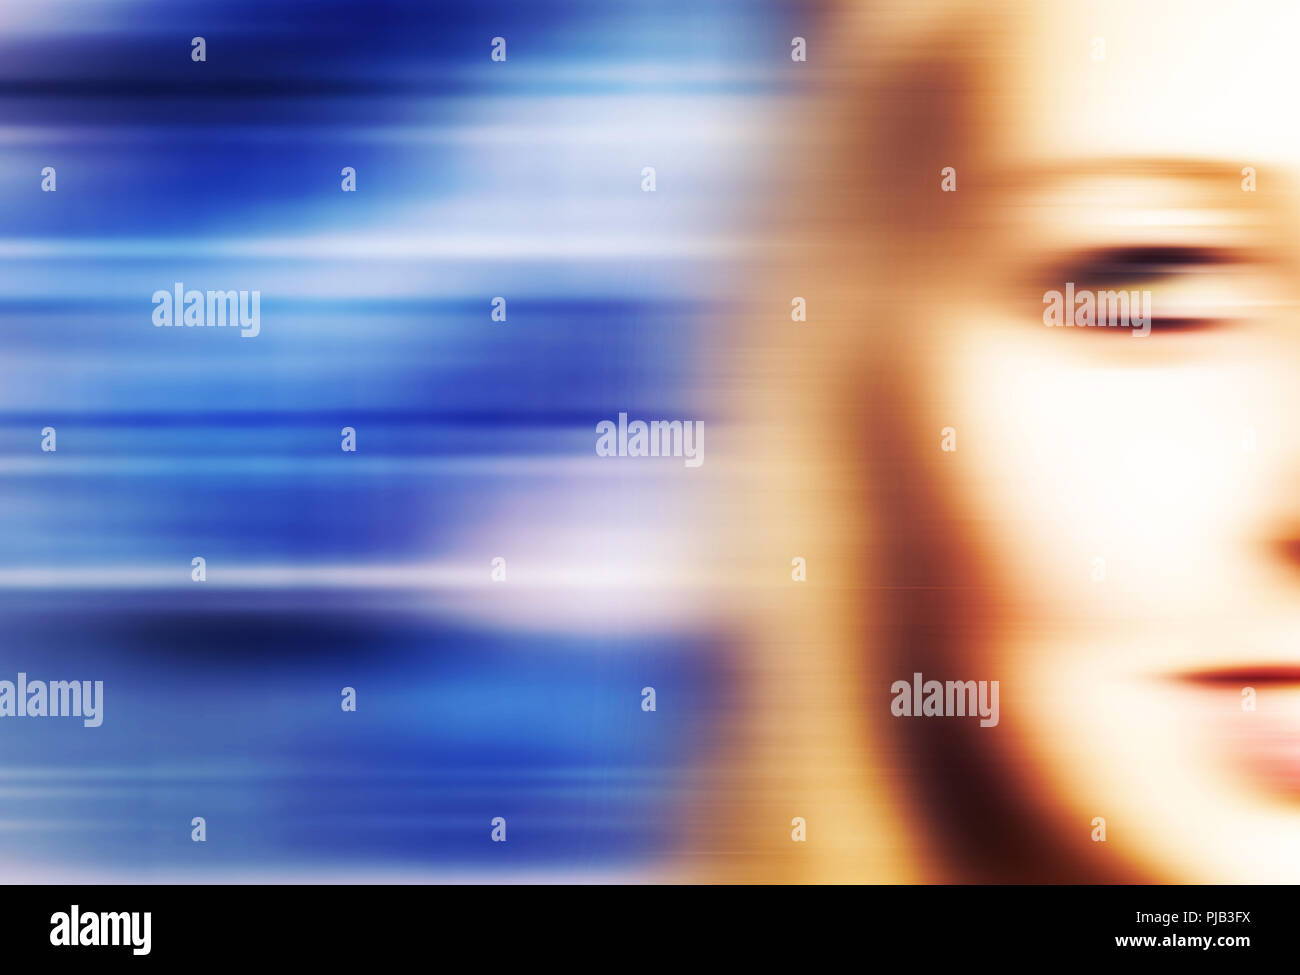 half face of a blond woman with motion blur effect - Stock Image